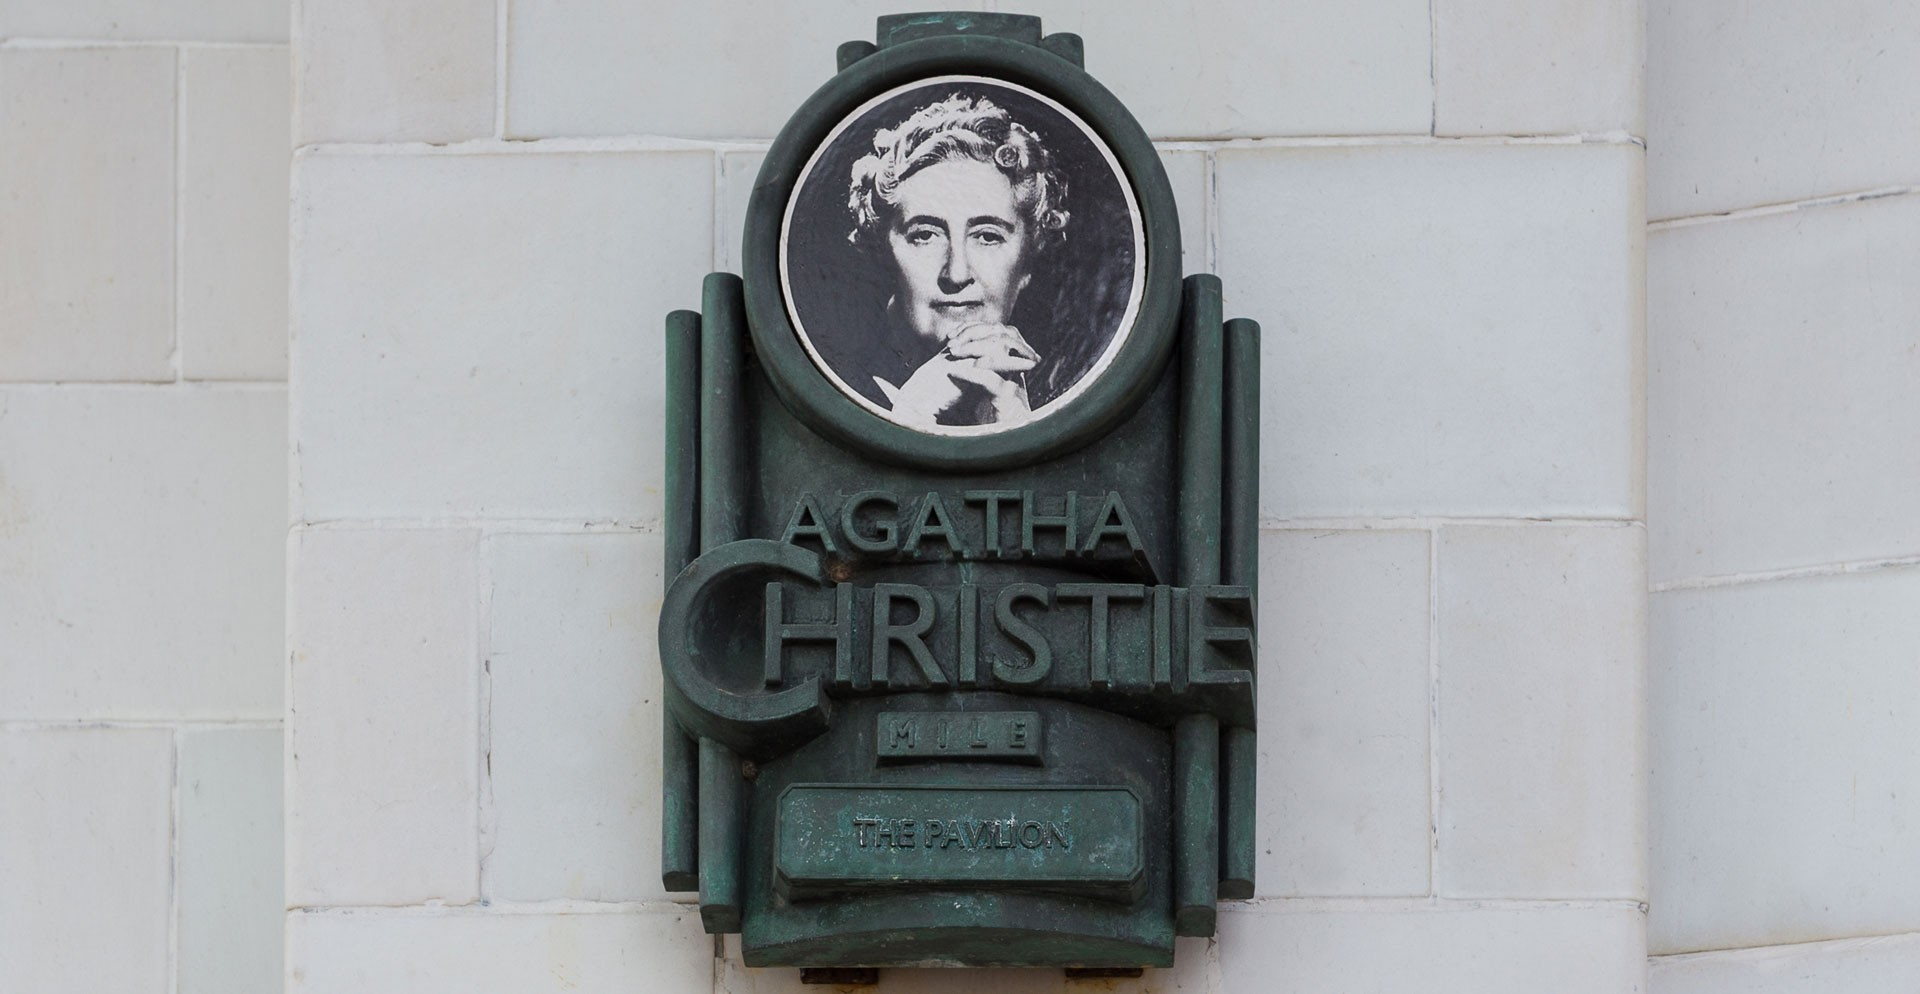 Agatha Christie: Finding a Way Forward